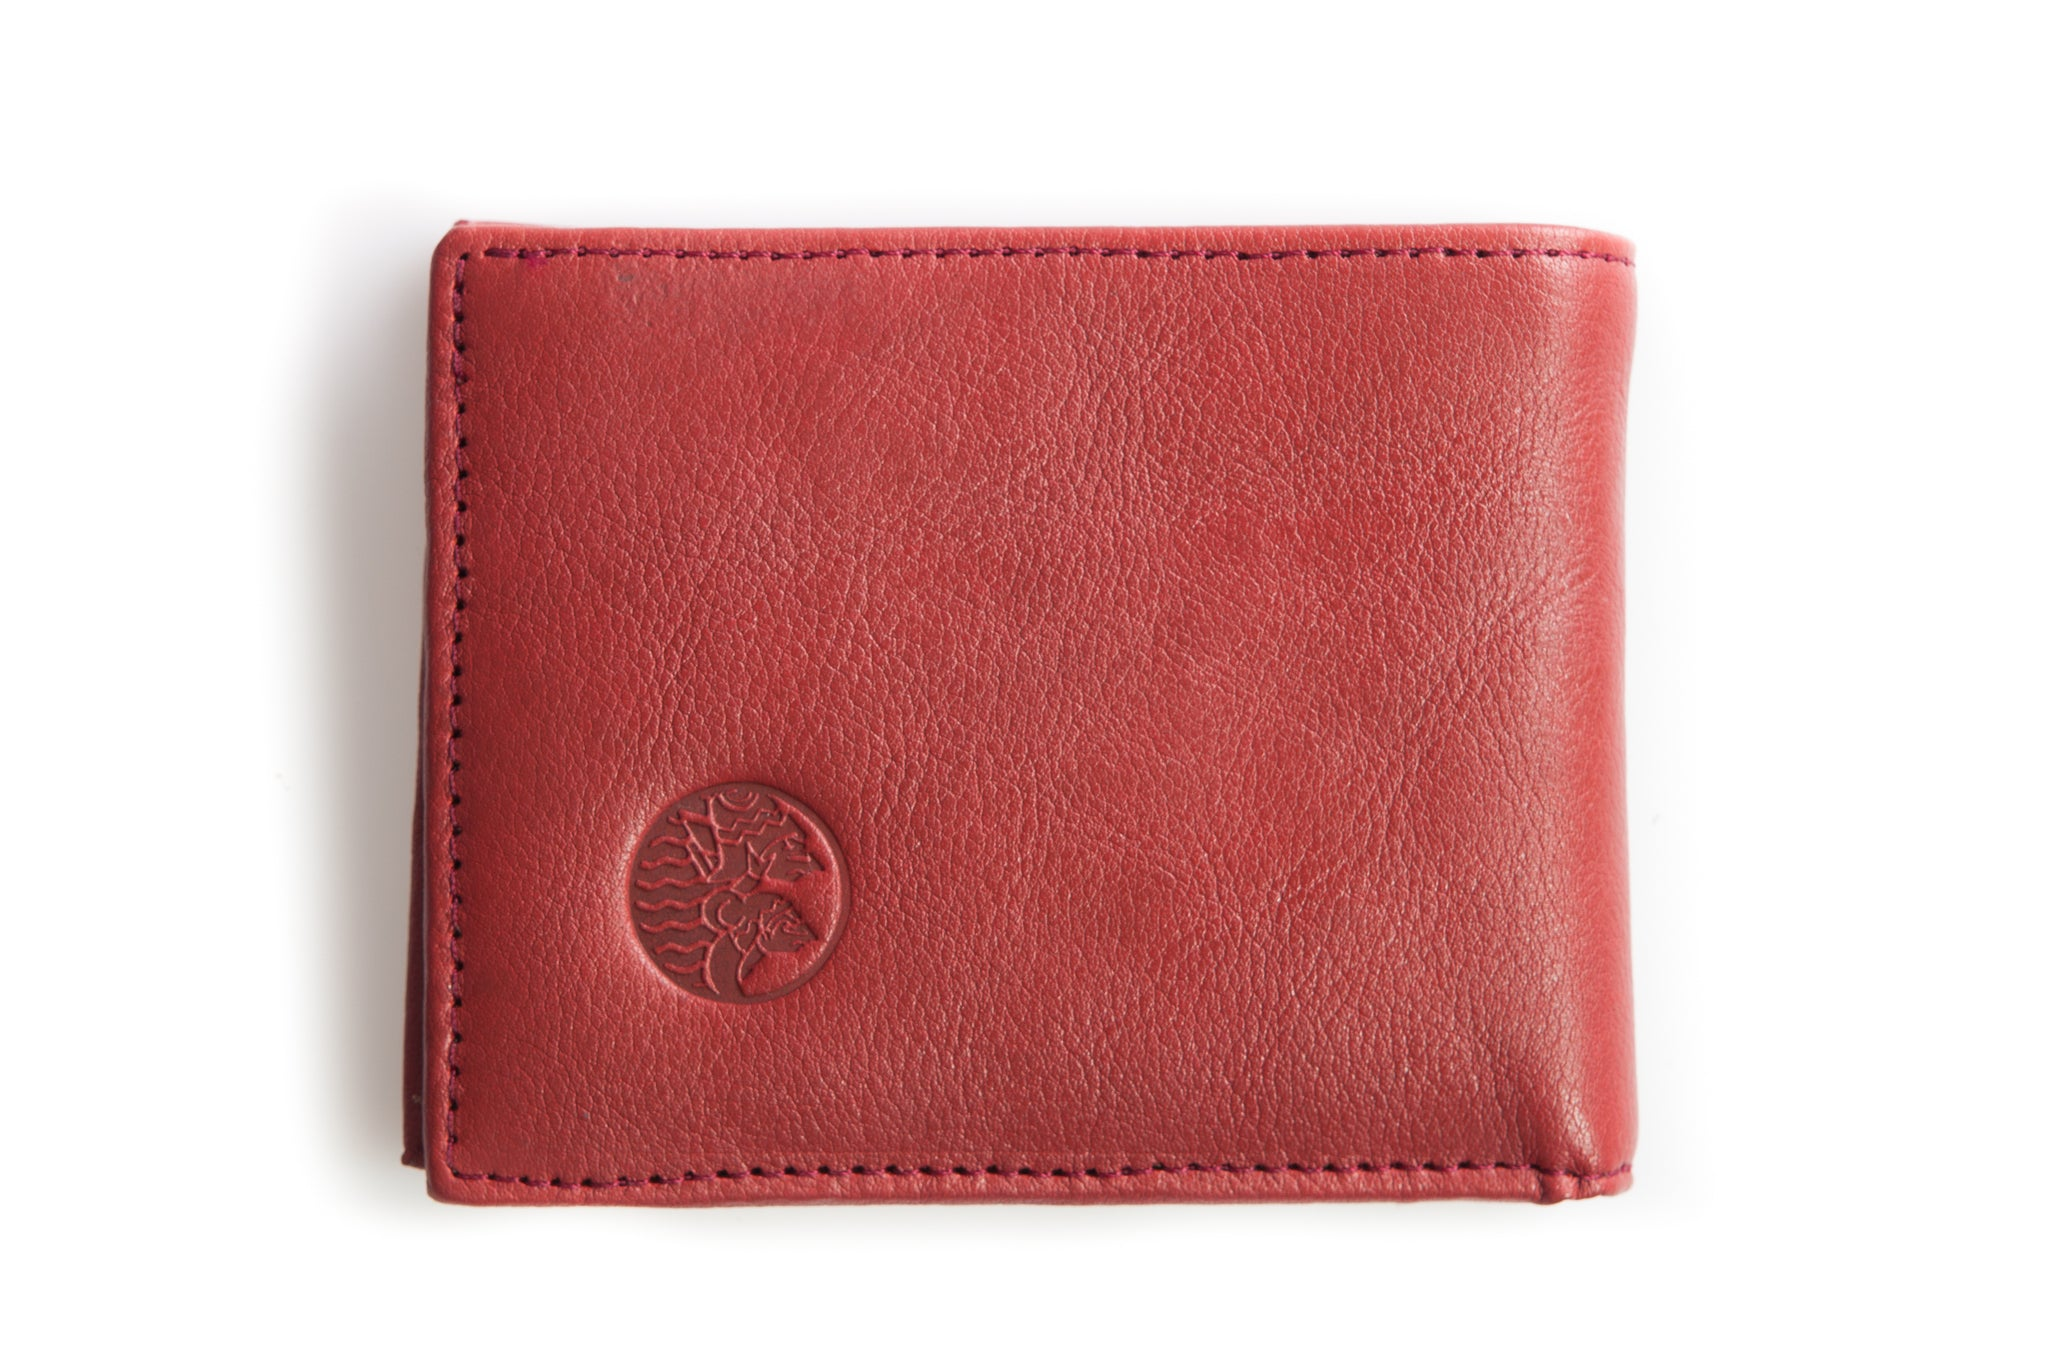 first of June, bima wallet, vegetable tanned leather, engraved leather, leather wallet